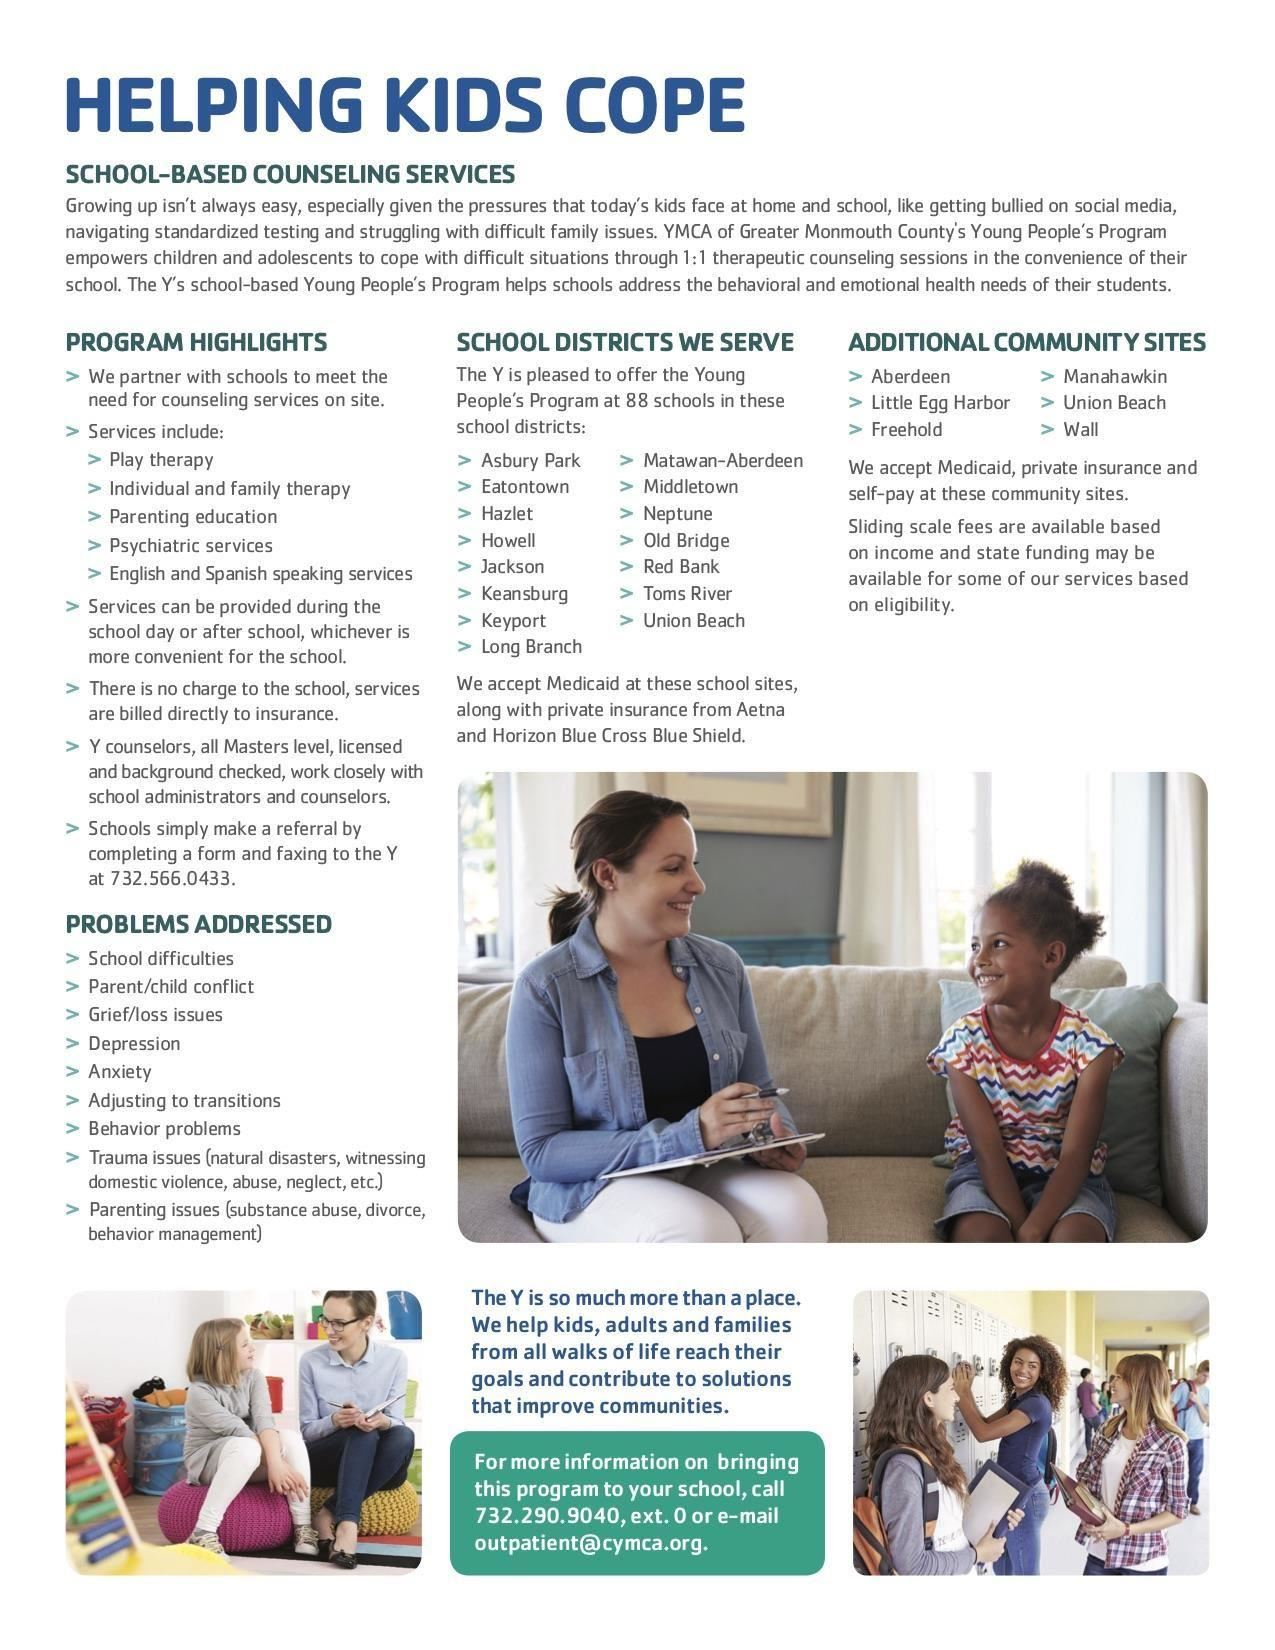 This is a YMCA document discussing available methods and program to help kids cope with various situations.